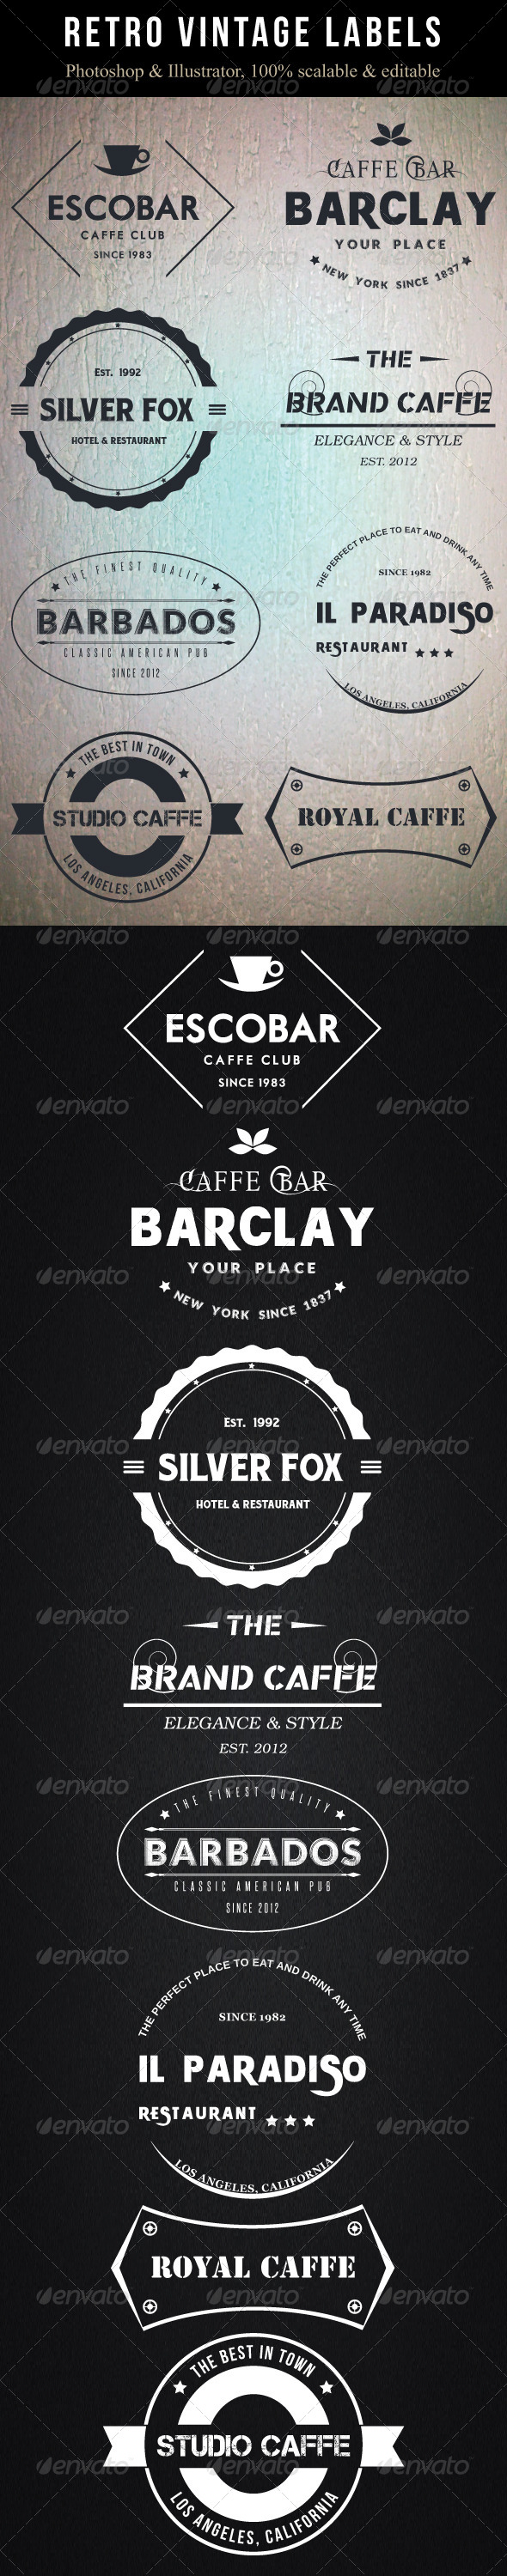 GraphicRiver Retro Vintage Labels 6959732